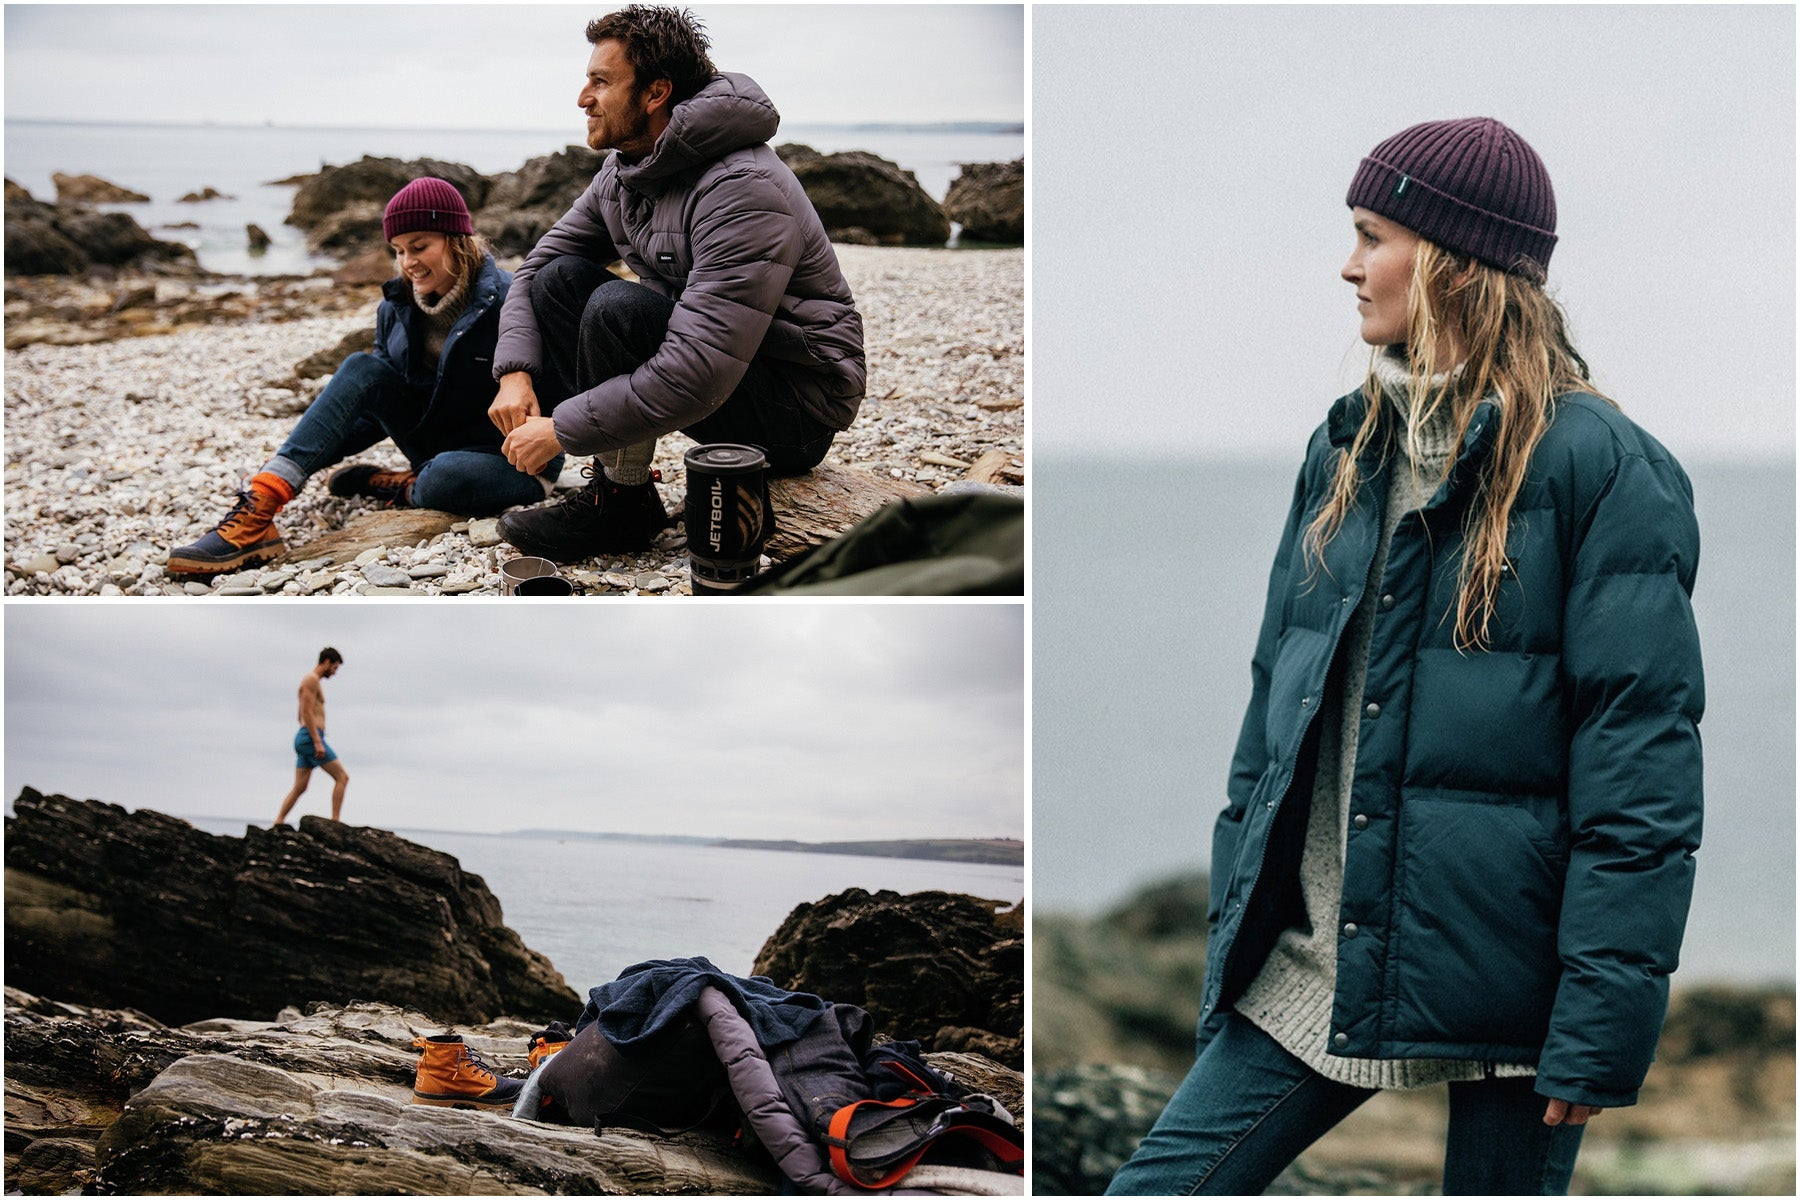 A couple spending time on a beach wearing Finisterre clothing